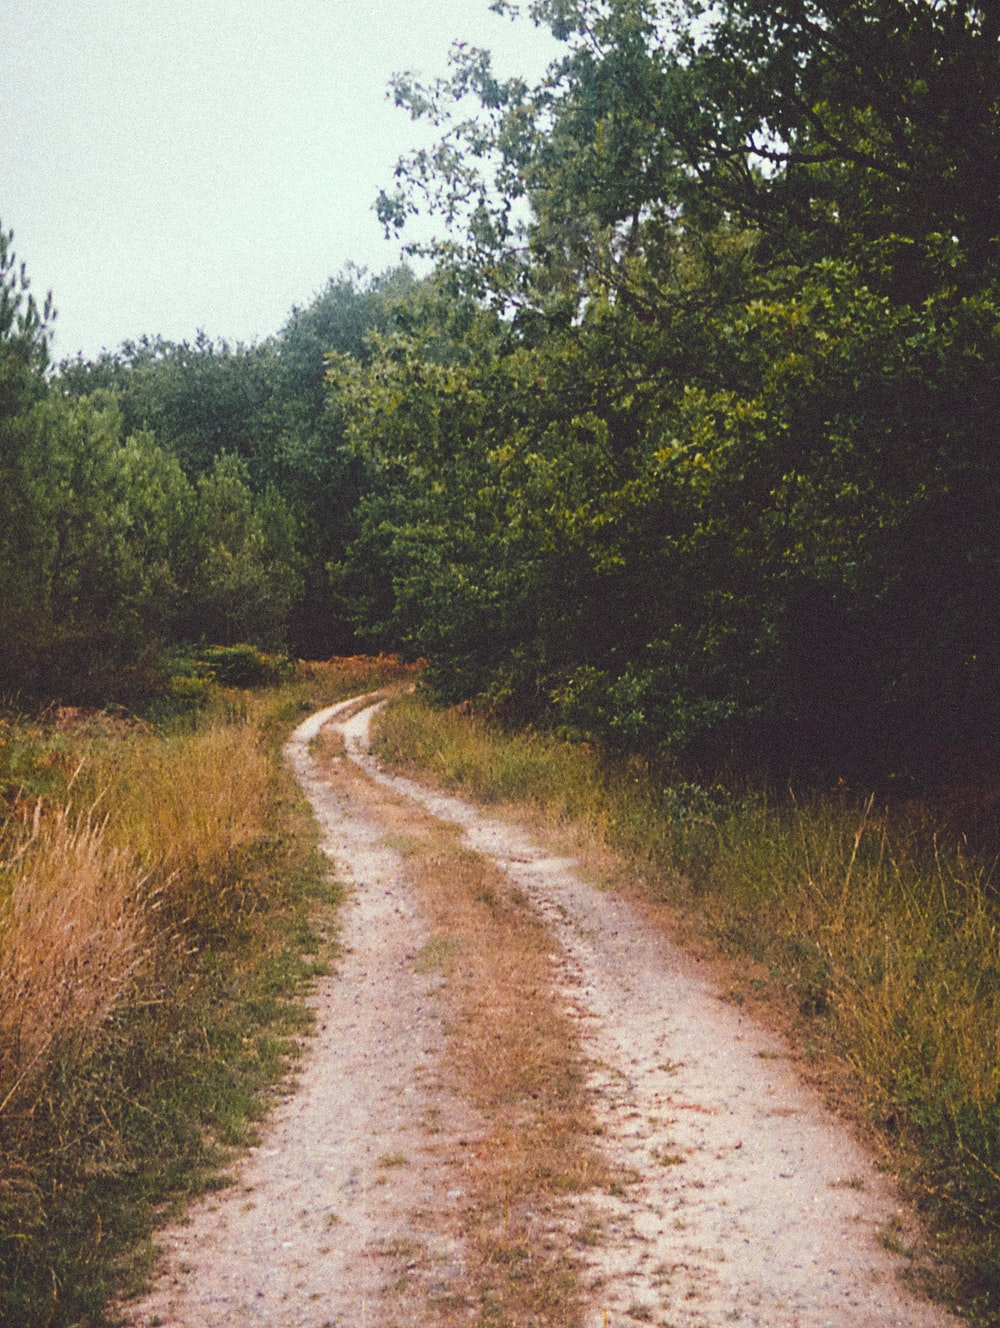 brown dirt road between green grass and trees during daytime